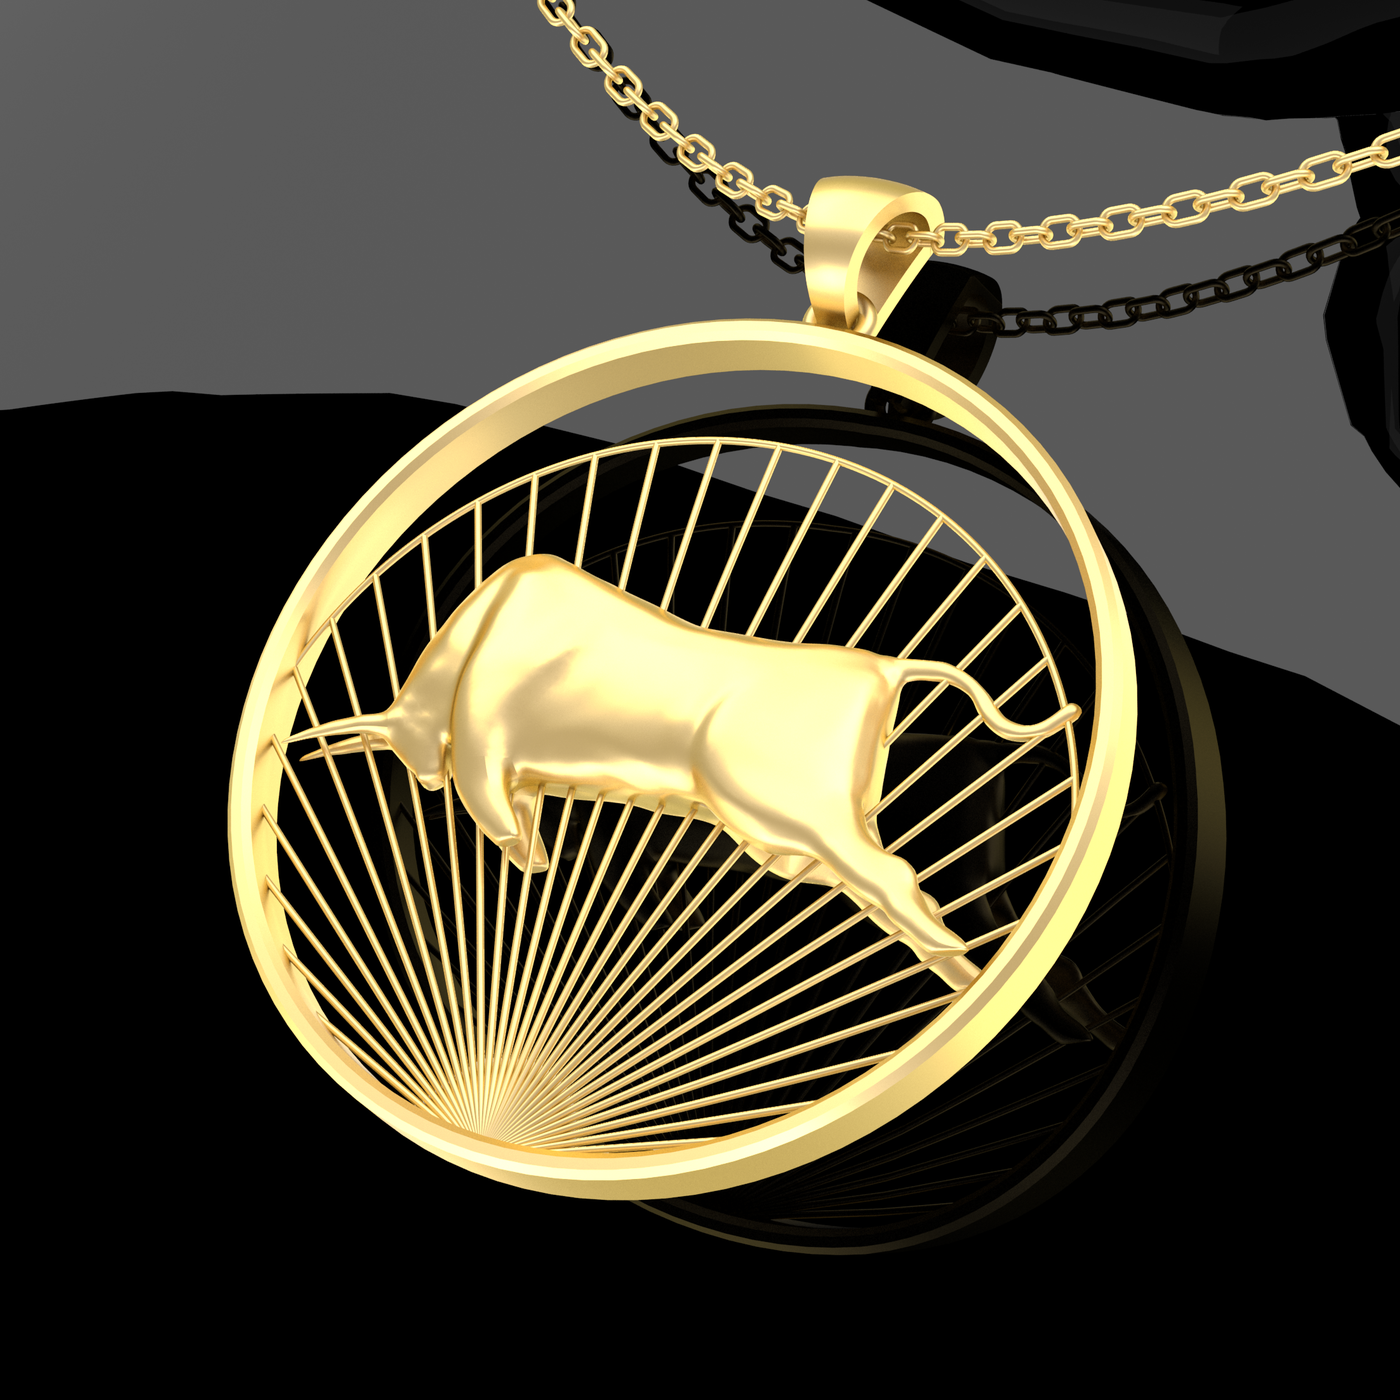 Matador Bull Pendant Jewelry Gold 3D Print Model